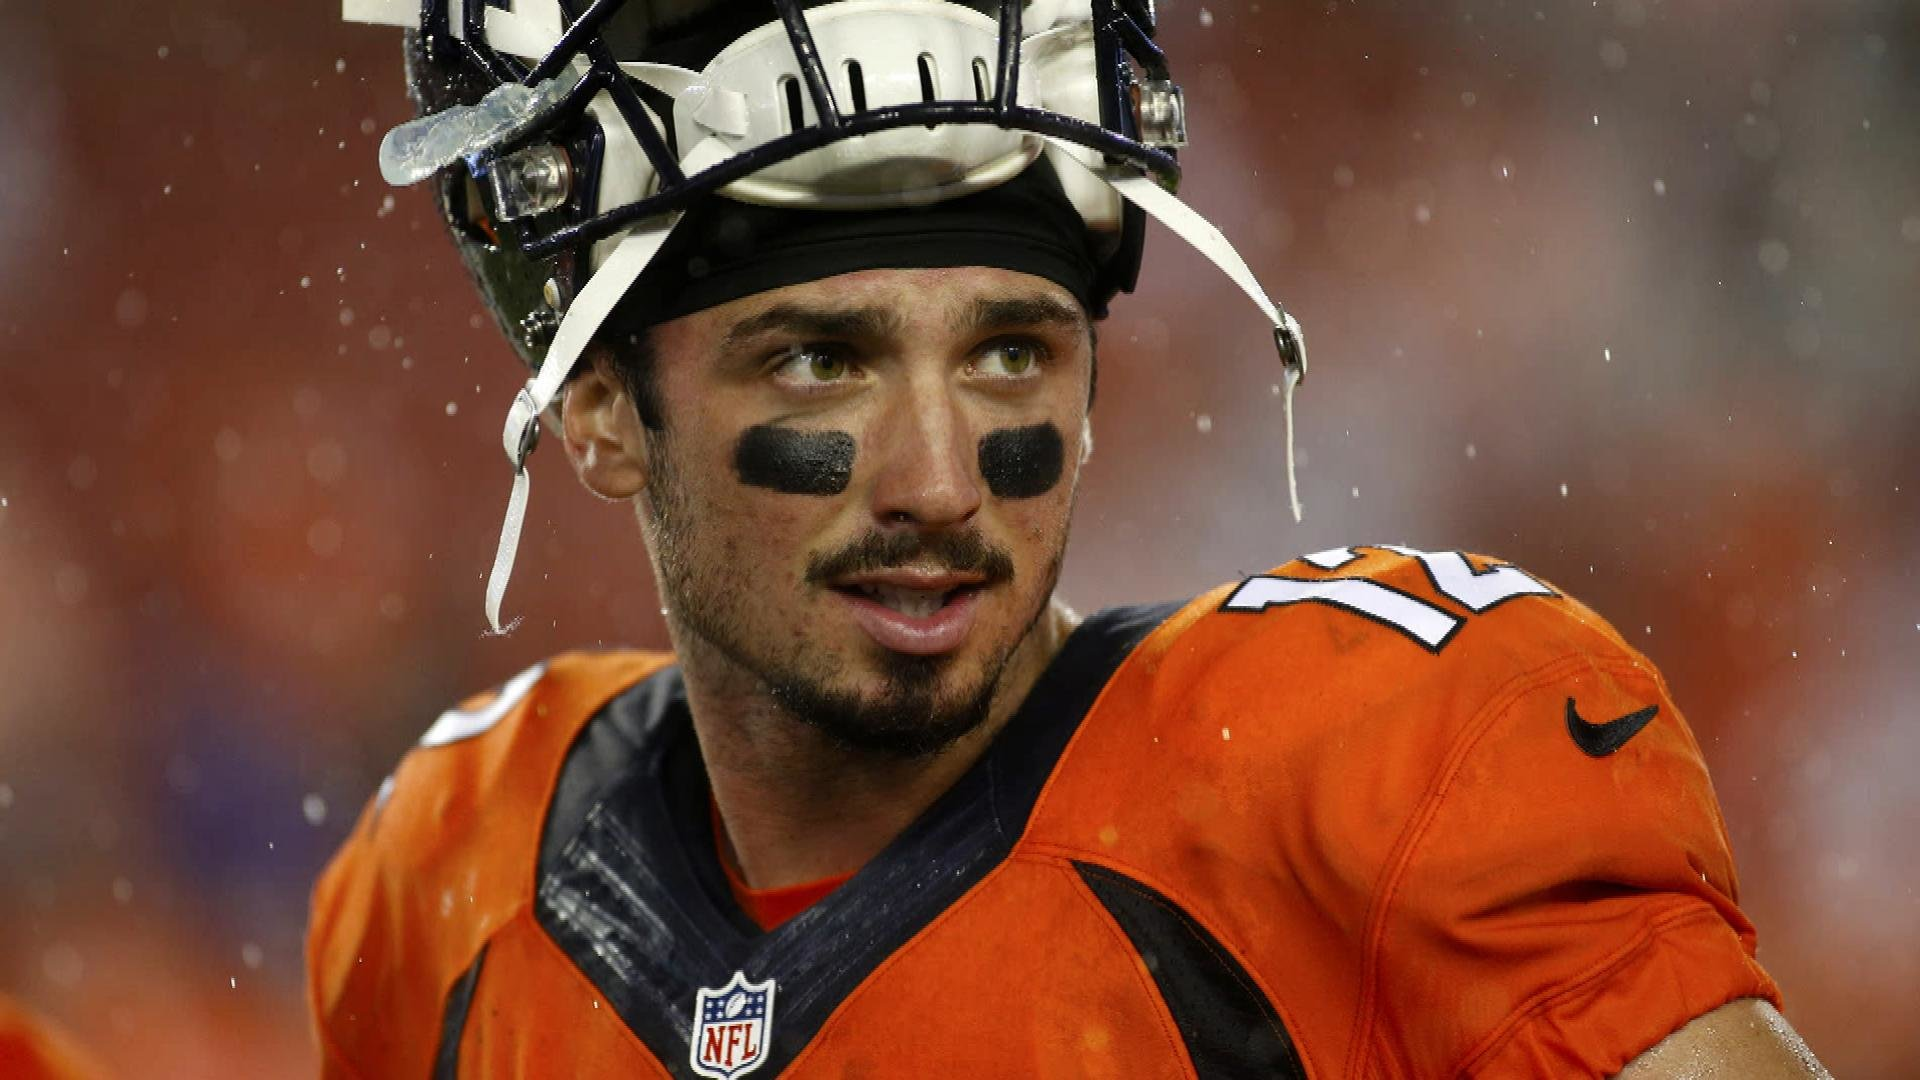 d51dfaf7178 Paxton Lynch had his chances to start with Denver Broncos | NBC Sports